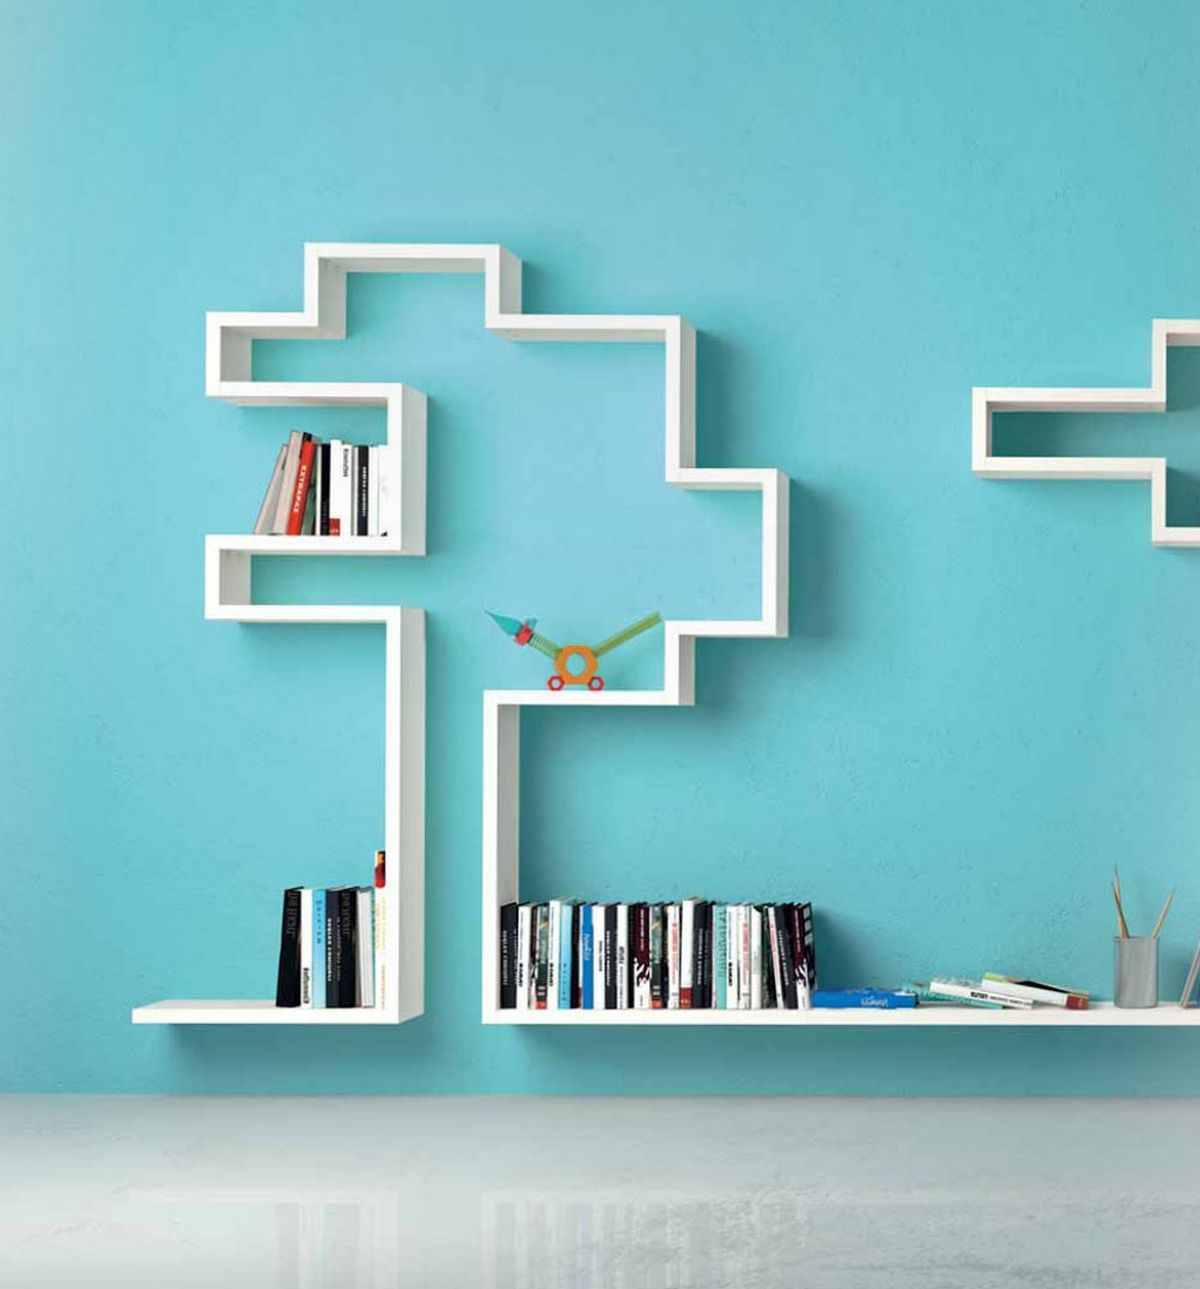 lago linea modular wall shelving innovative design | interior